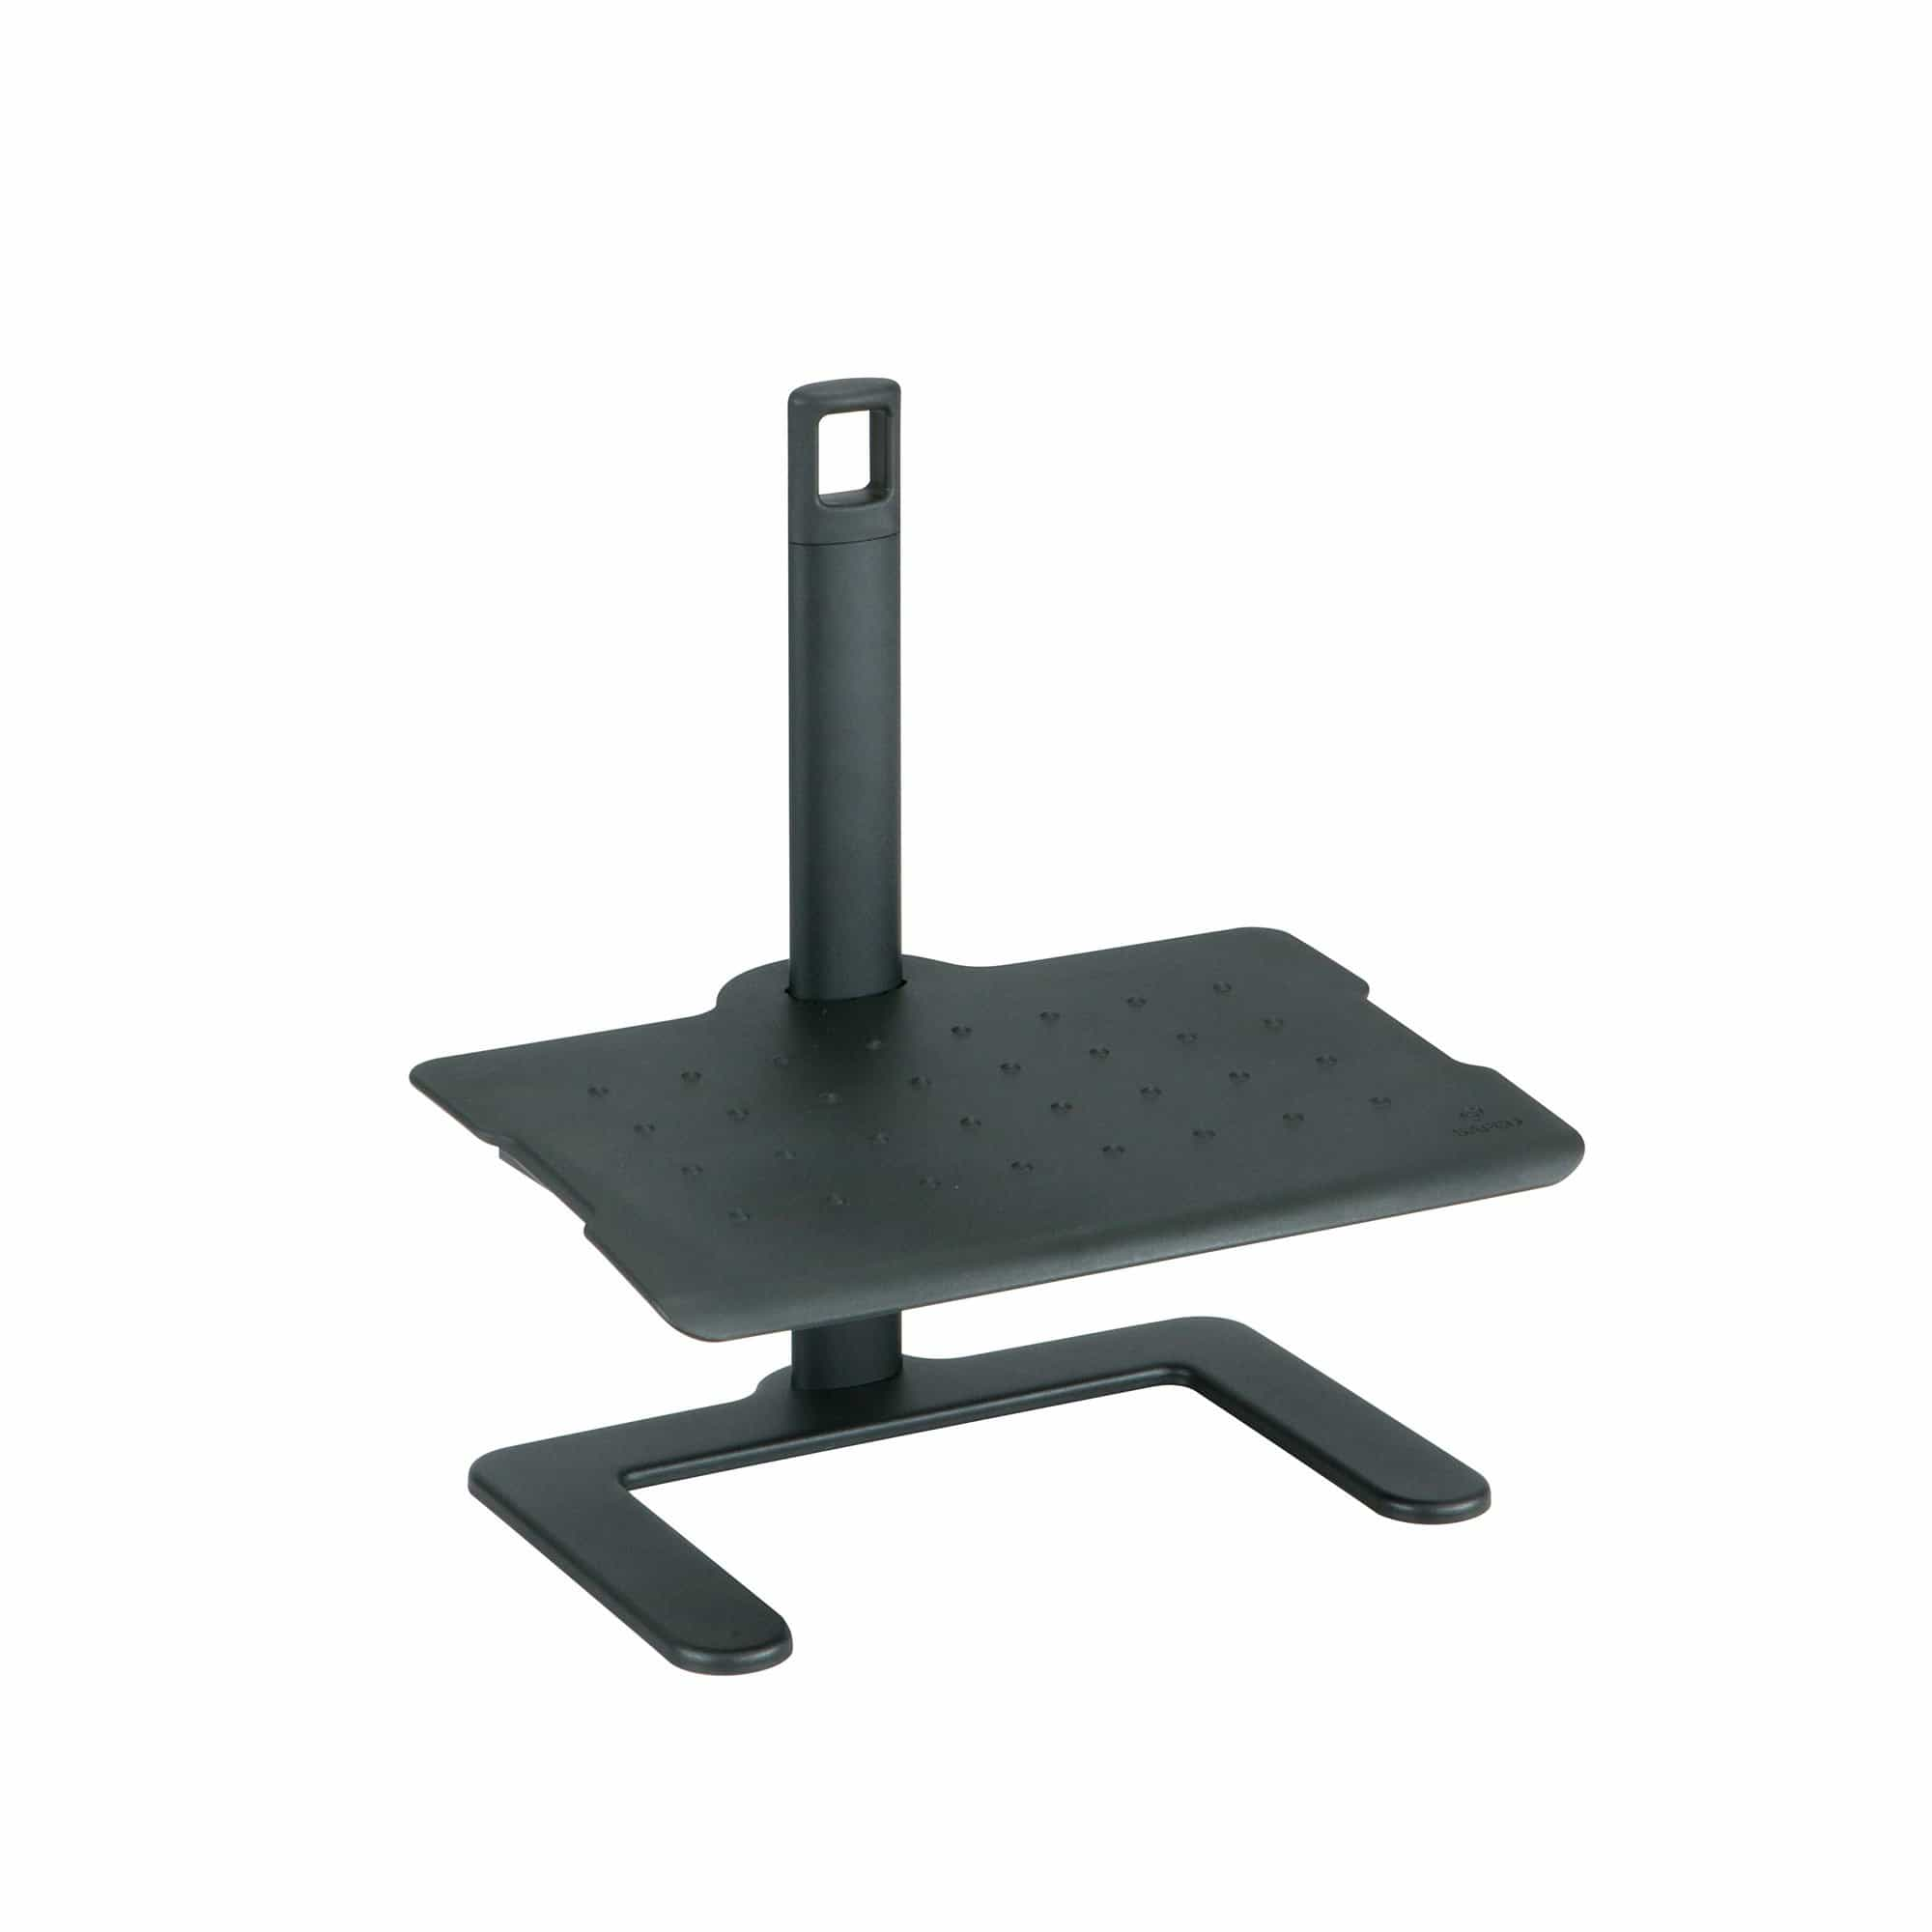 bedinhome - 2129BL Shift Comfort Design Black Nylon Plastic Height-Adjustable Footrest For Standing Desk With Cam Lock - Safco - Footrest